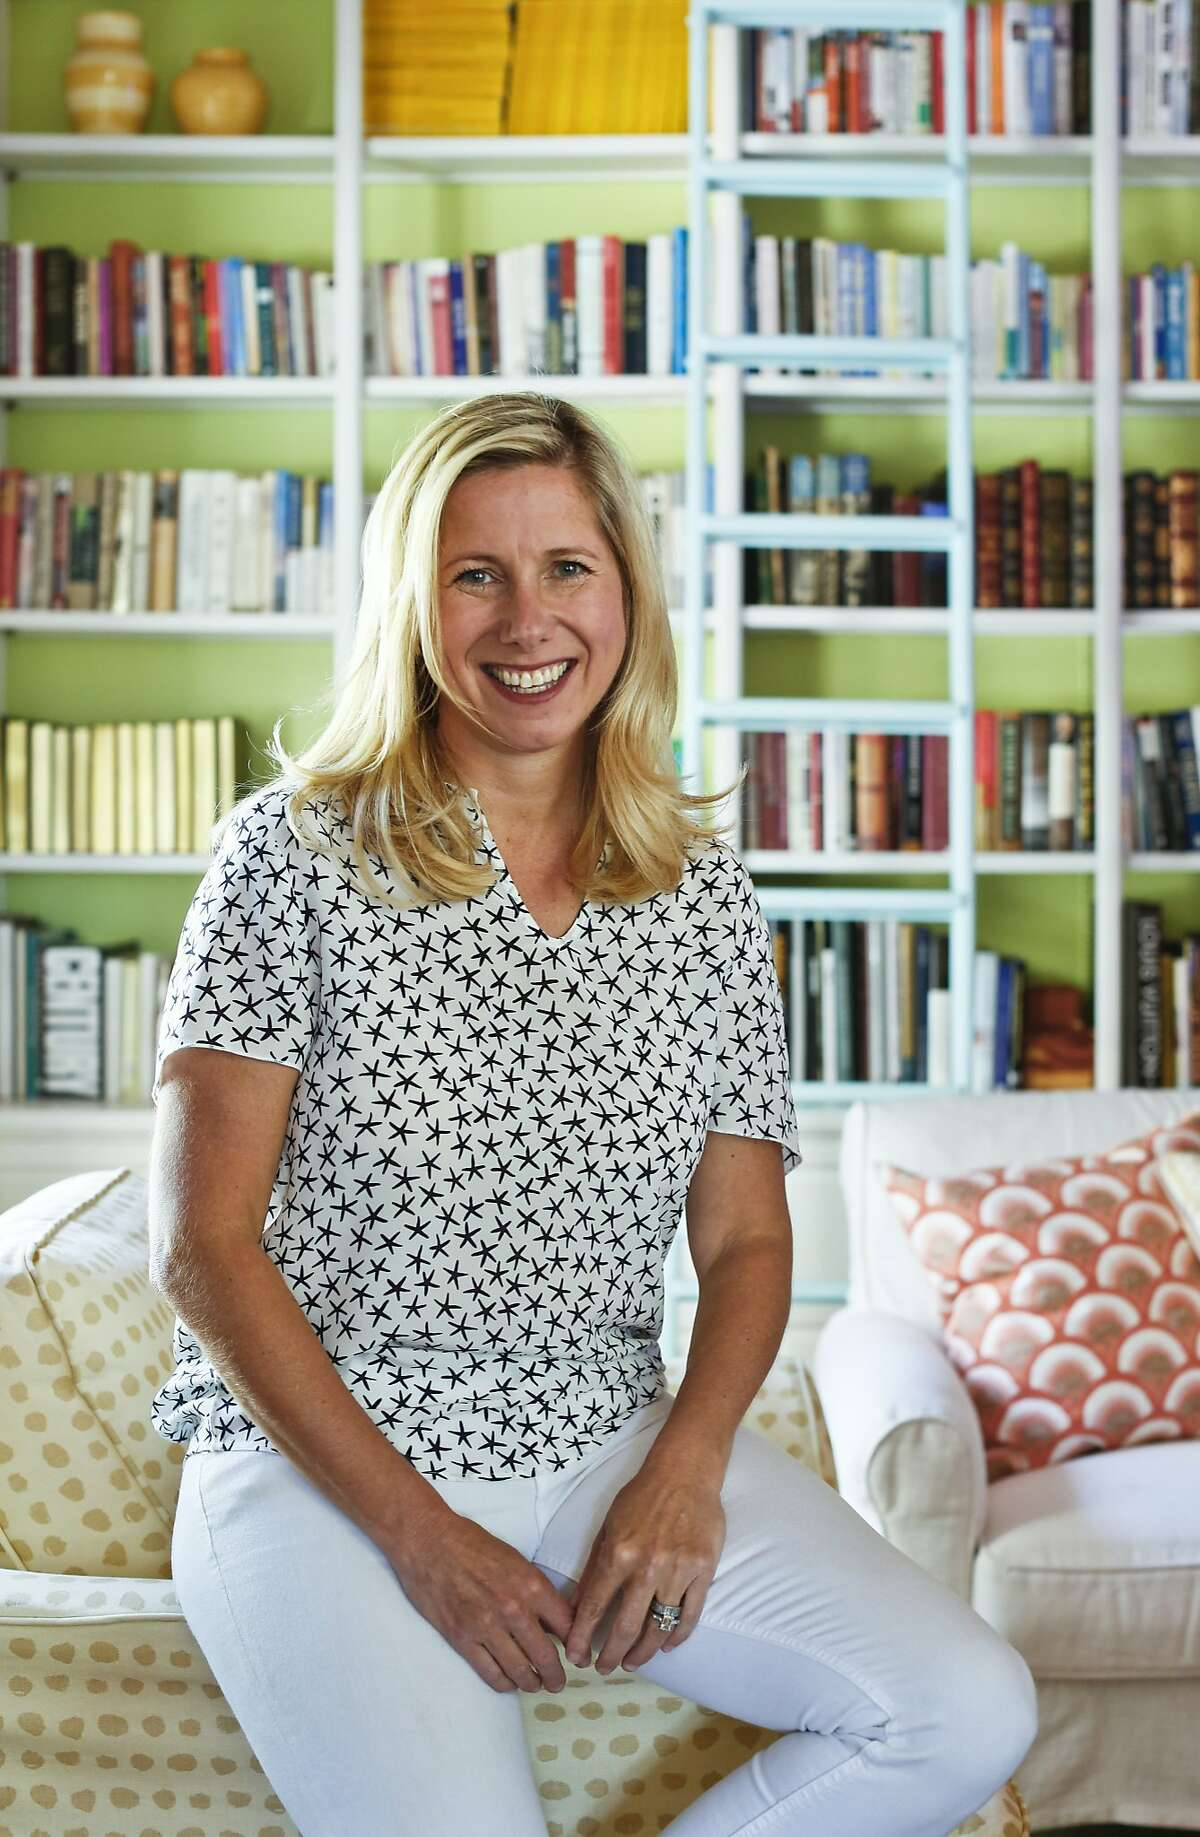 Lily Kanter, co-founder of the home and textiles company Serena & Lily, in the library of her Mill Valley home.